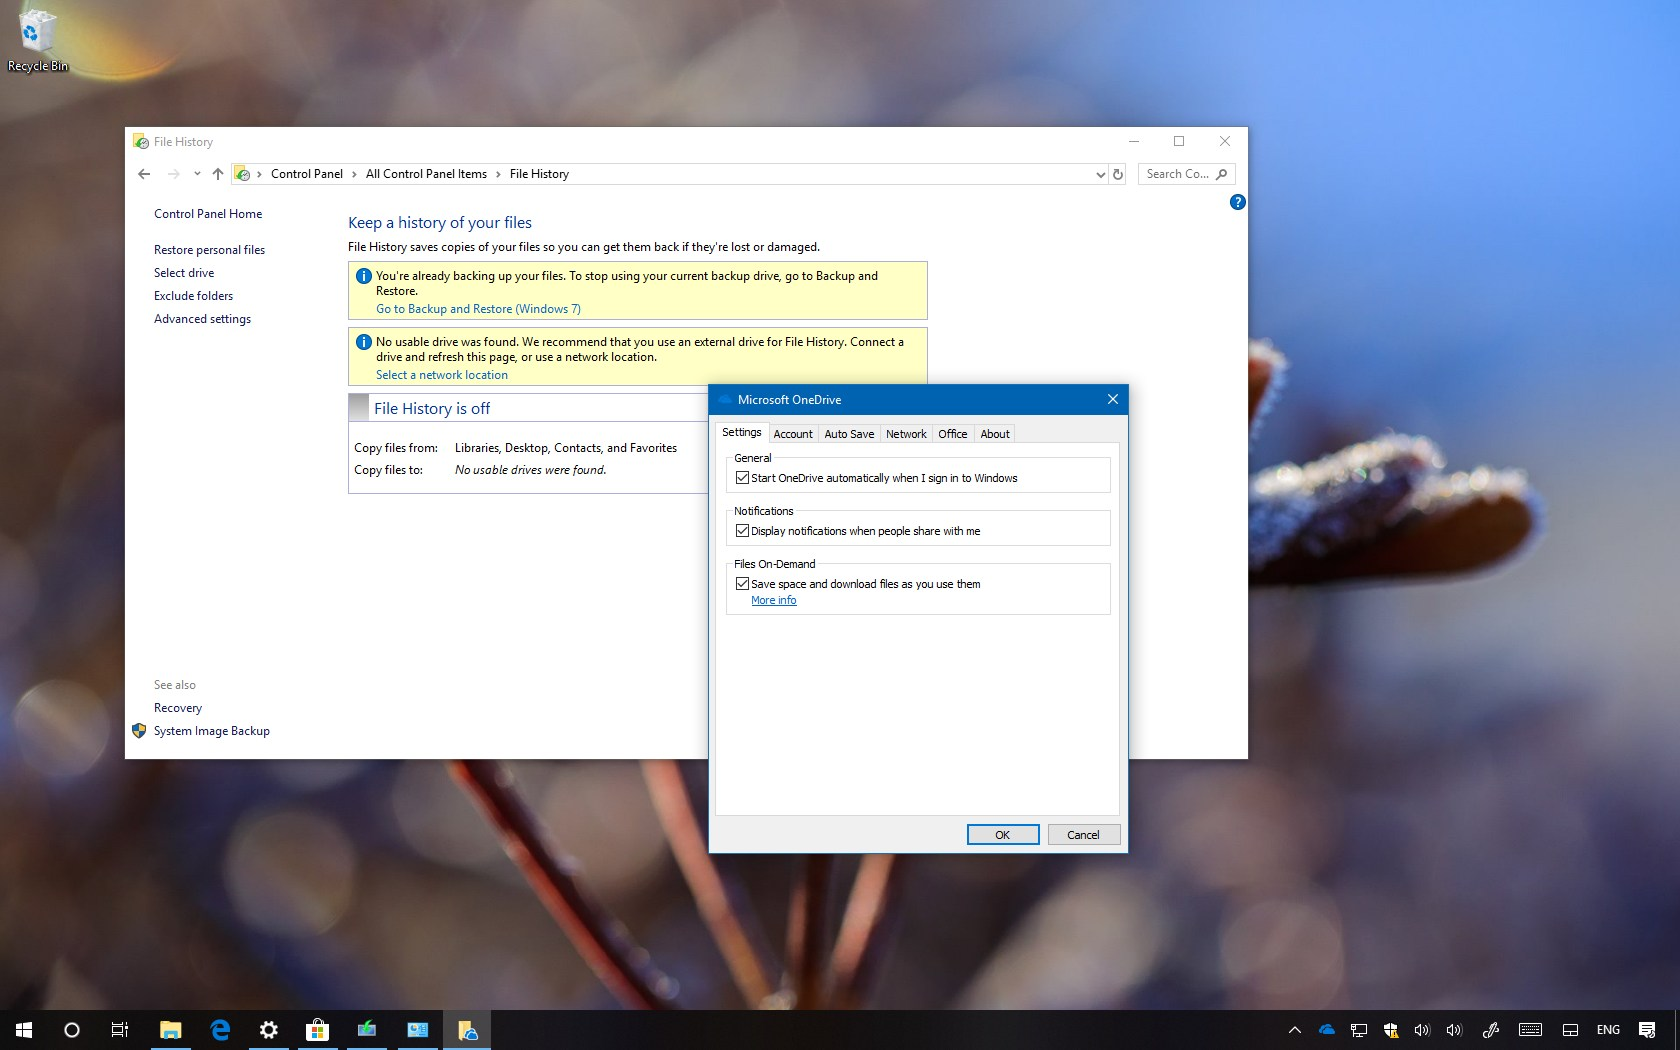 OneDrive and File History on Windows 10